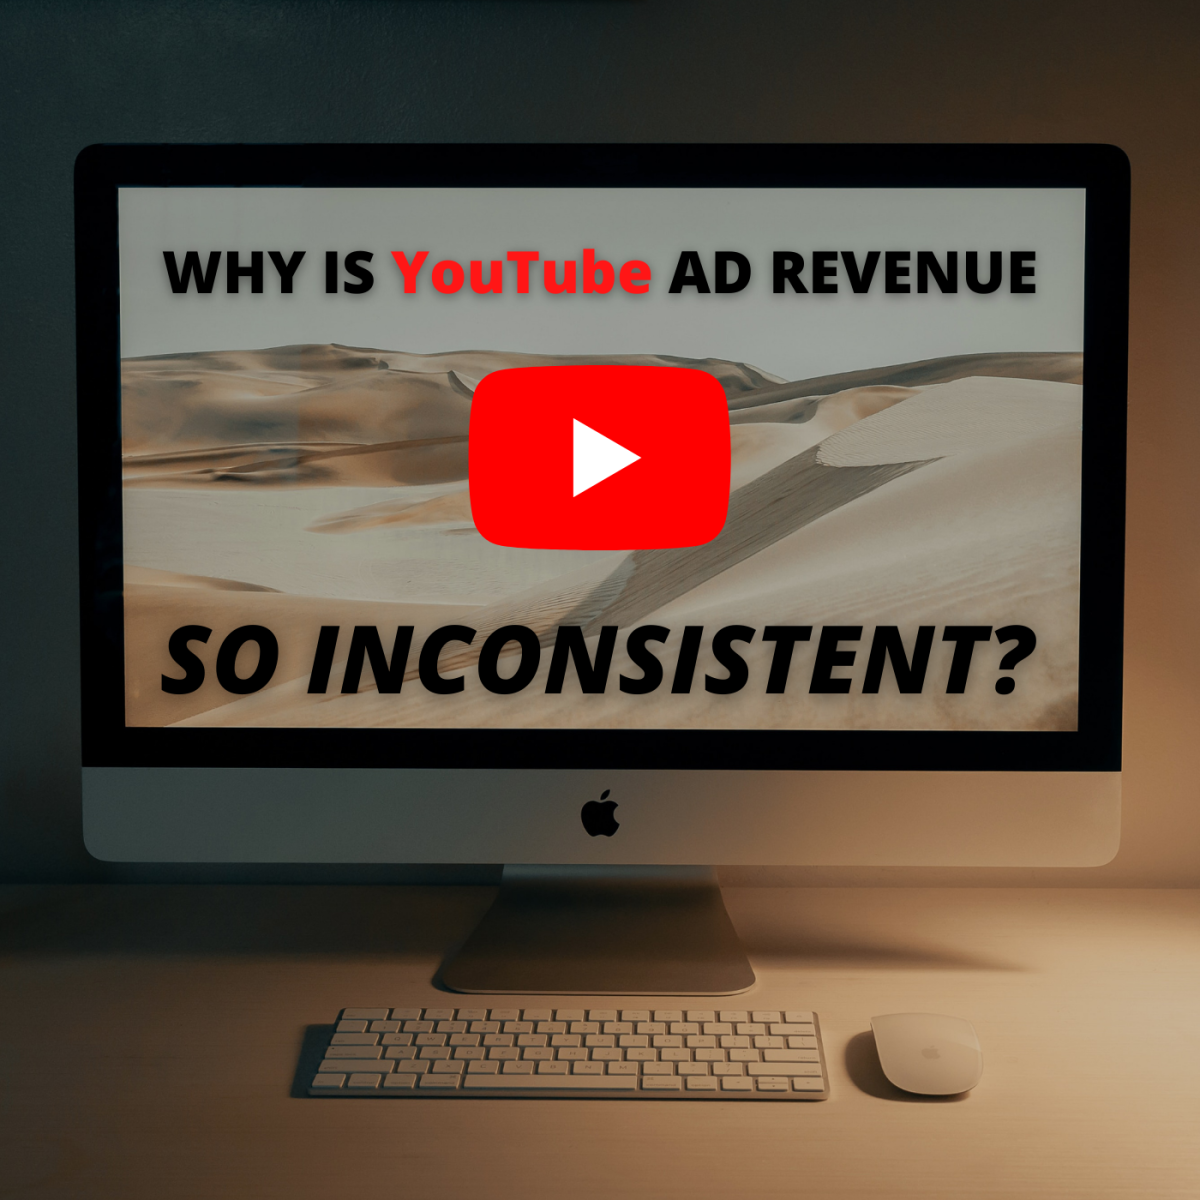 YouTube monetisation can be a great way to earn extra income, but for many, this income isn't consistent.